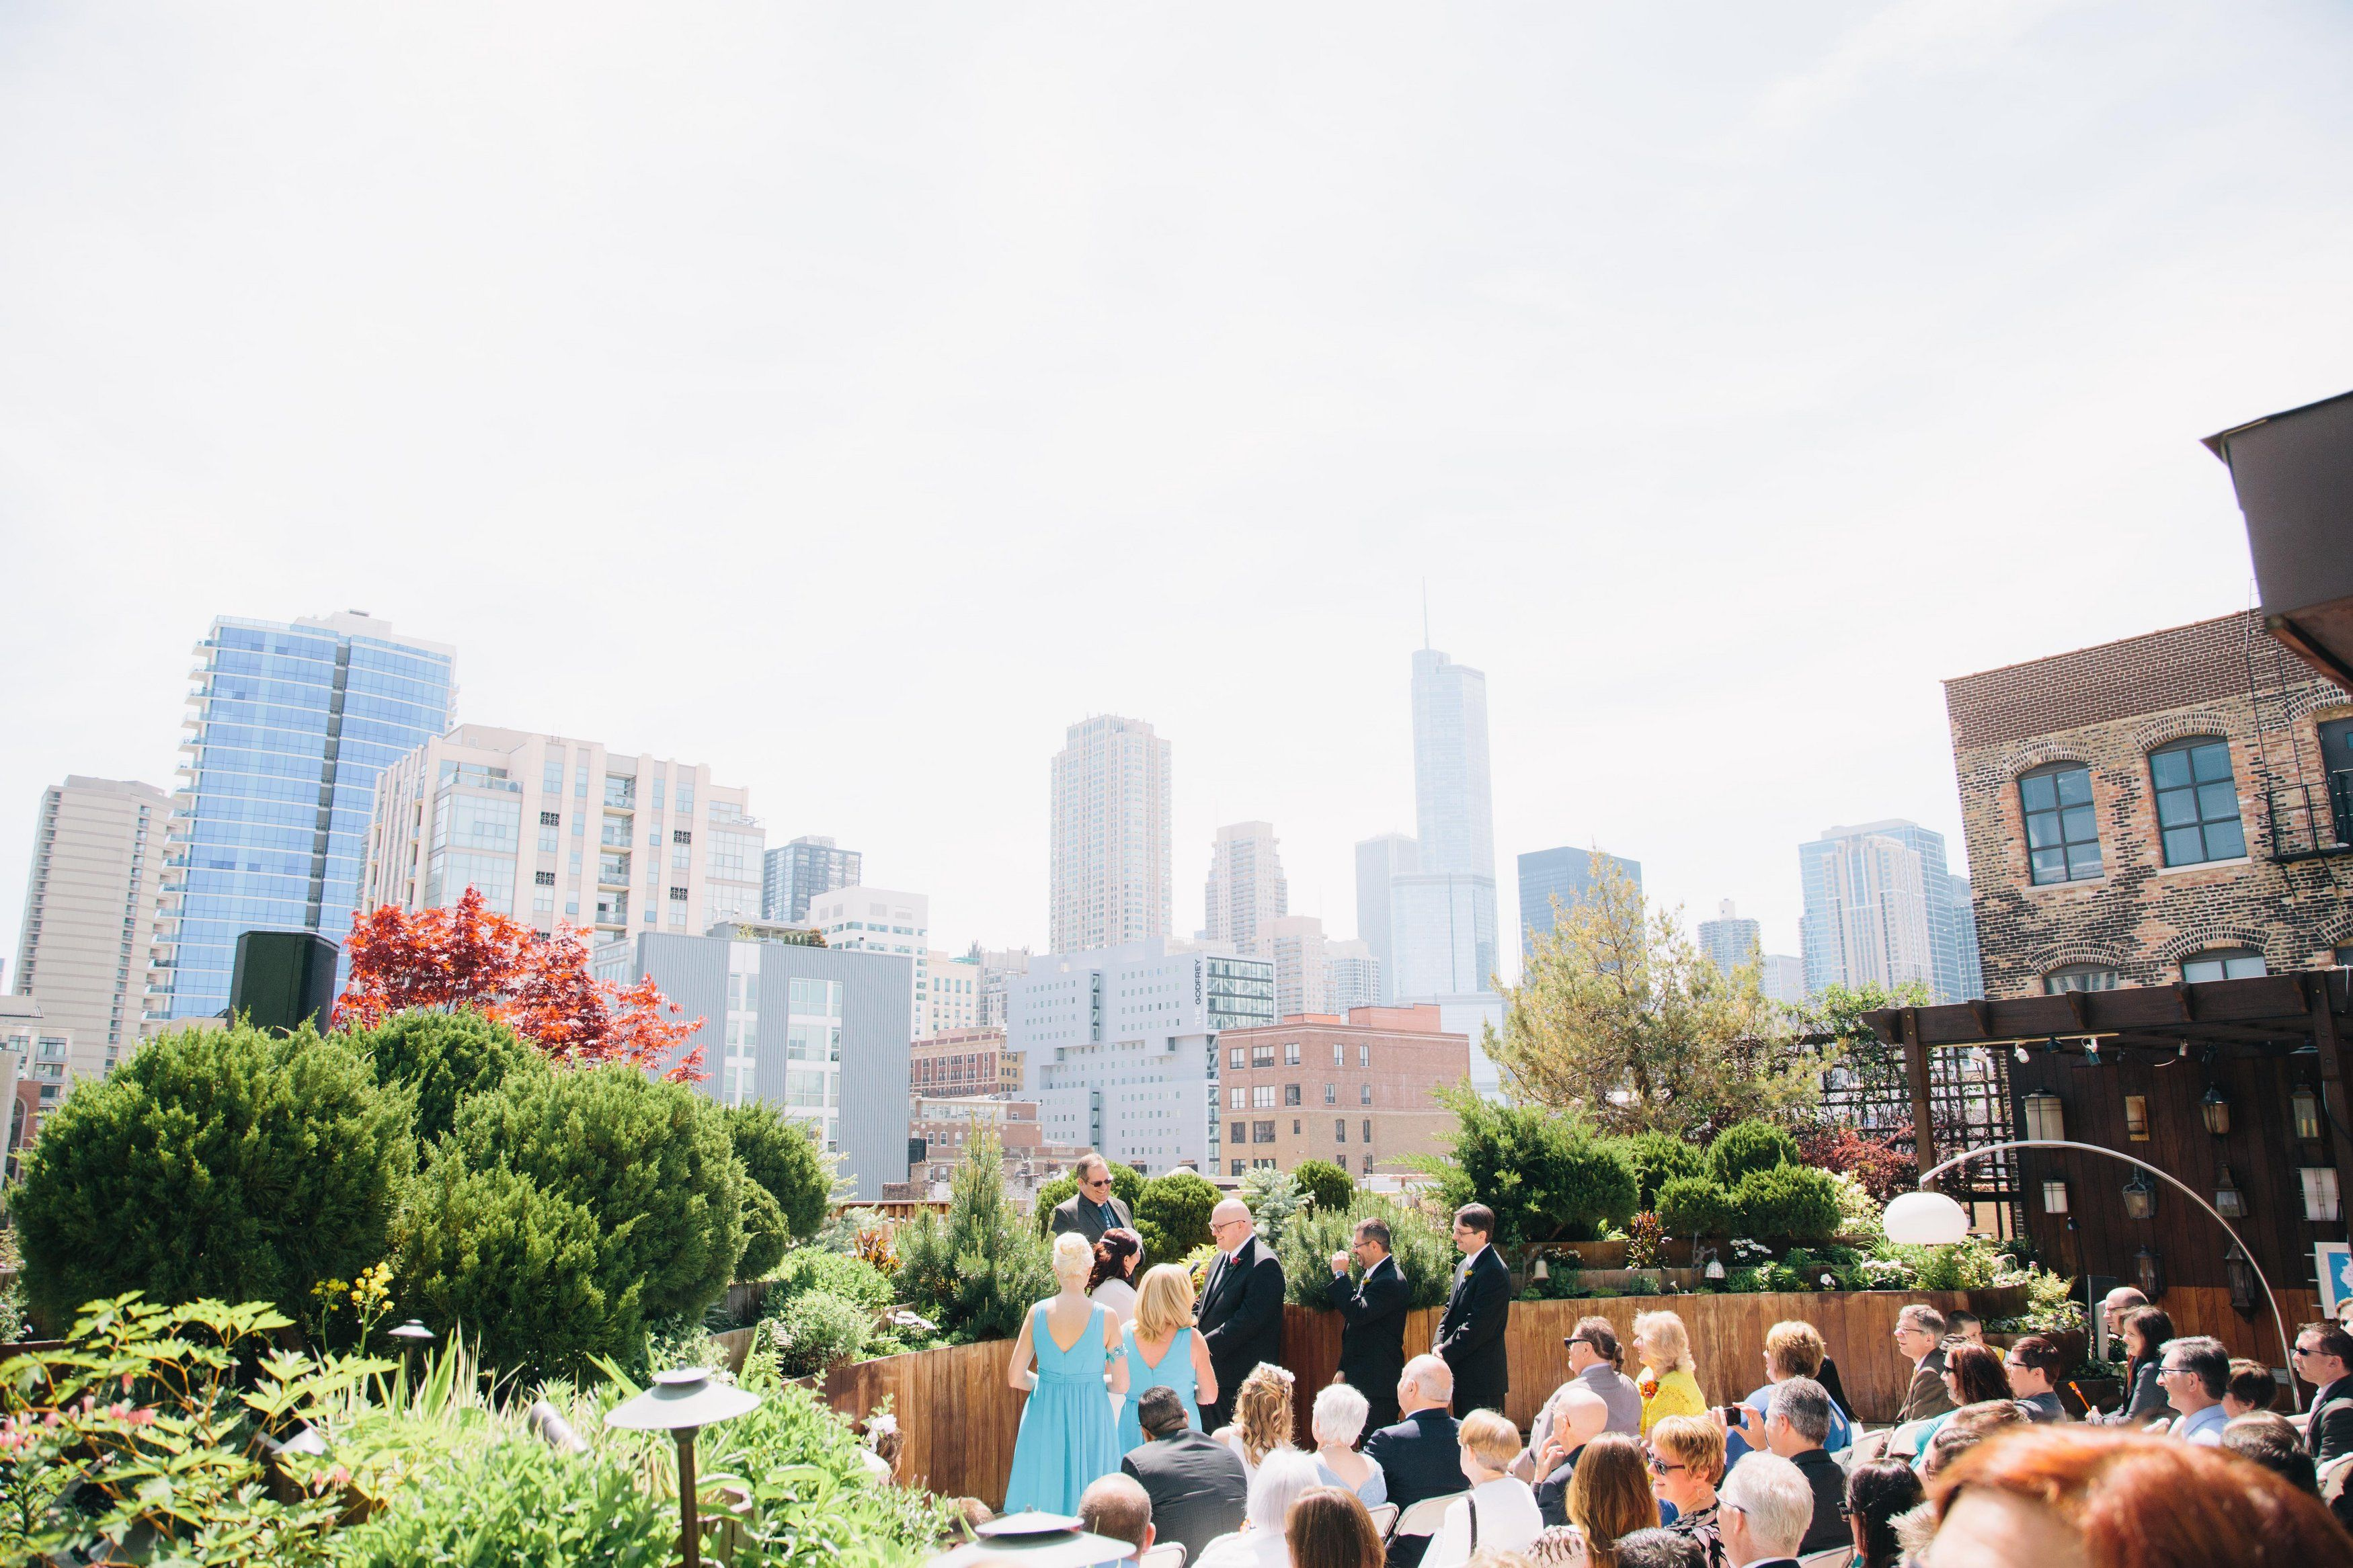 Early Morning Wedding Ceremony At Lightology In Chicago Followed By A Brunch Reception Credit